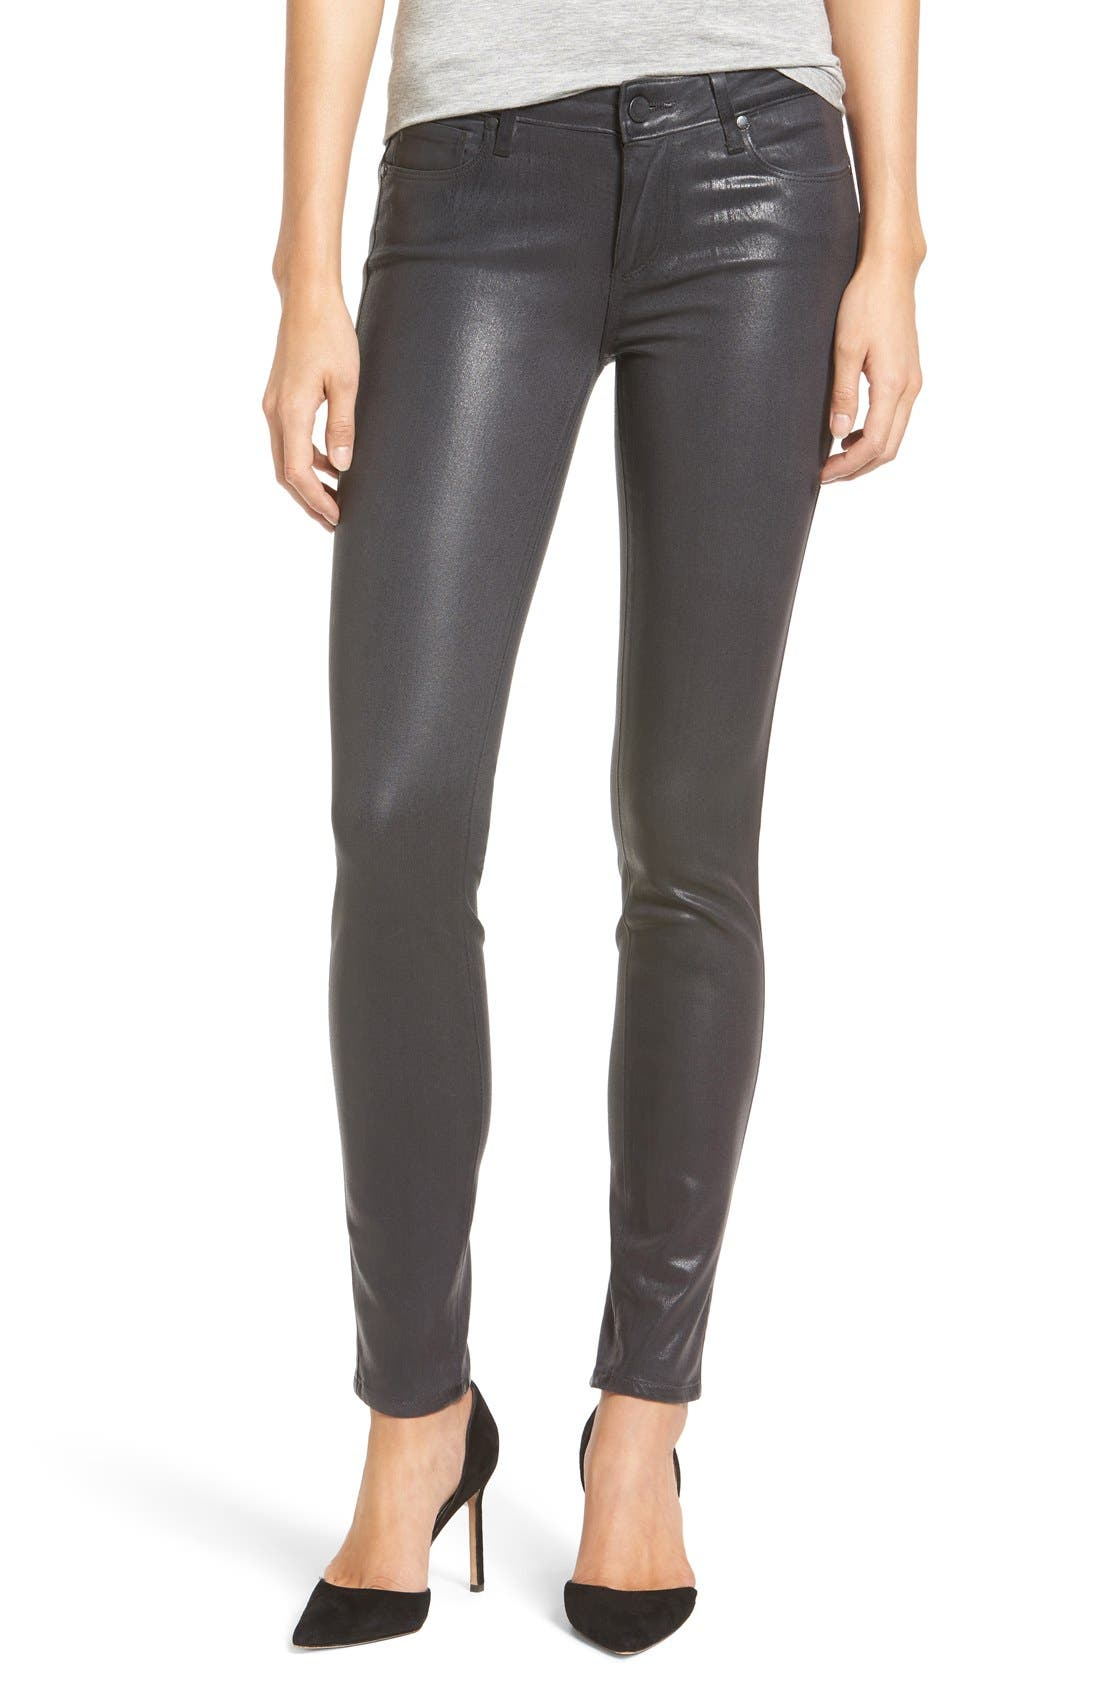 PAIGE Transcend - Verdugo Coated Ultra Skinny Jeans